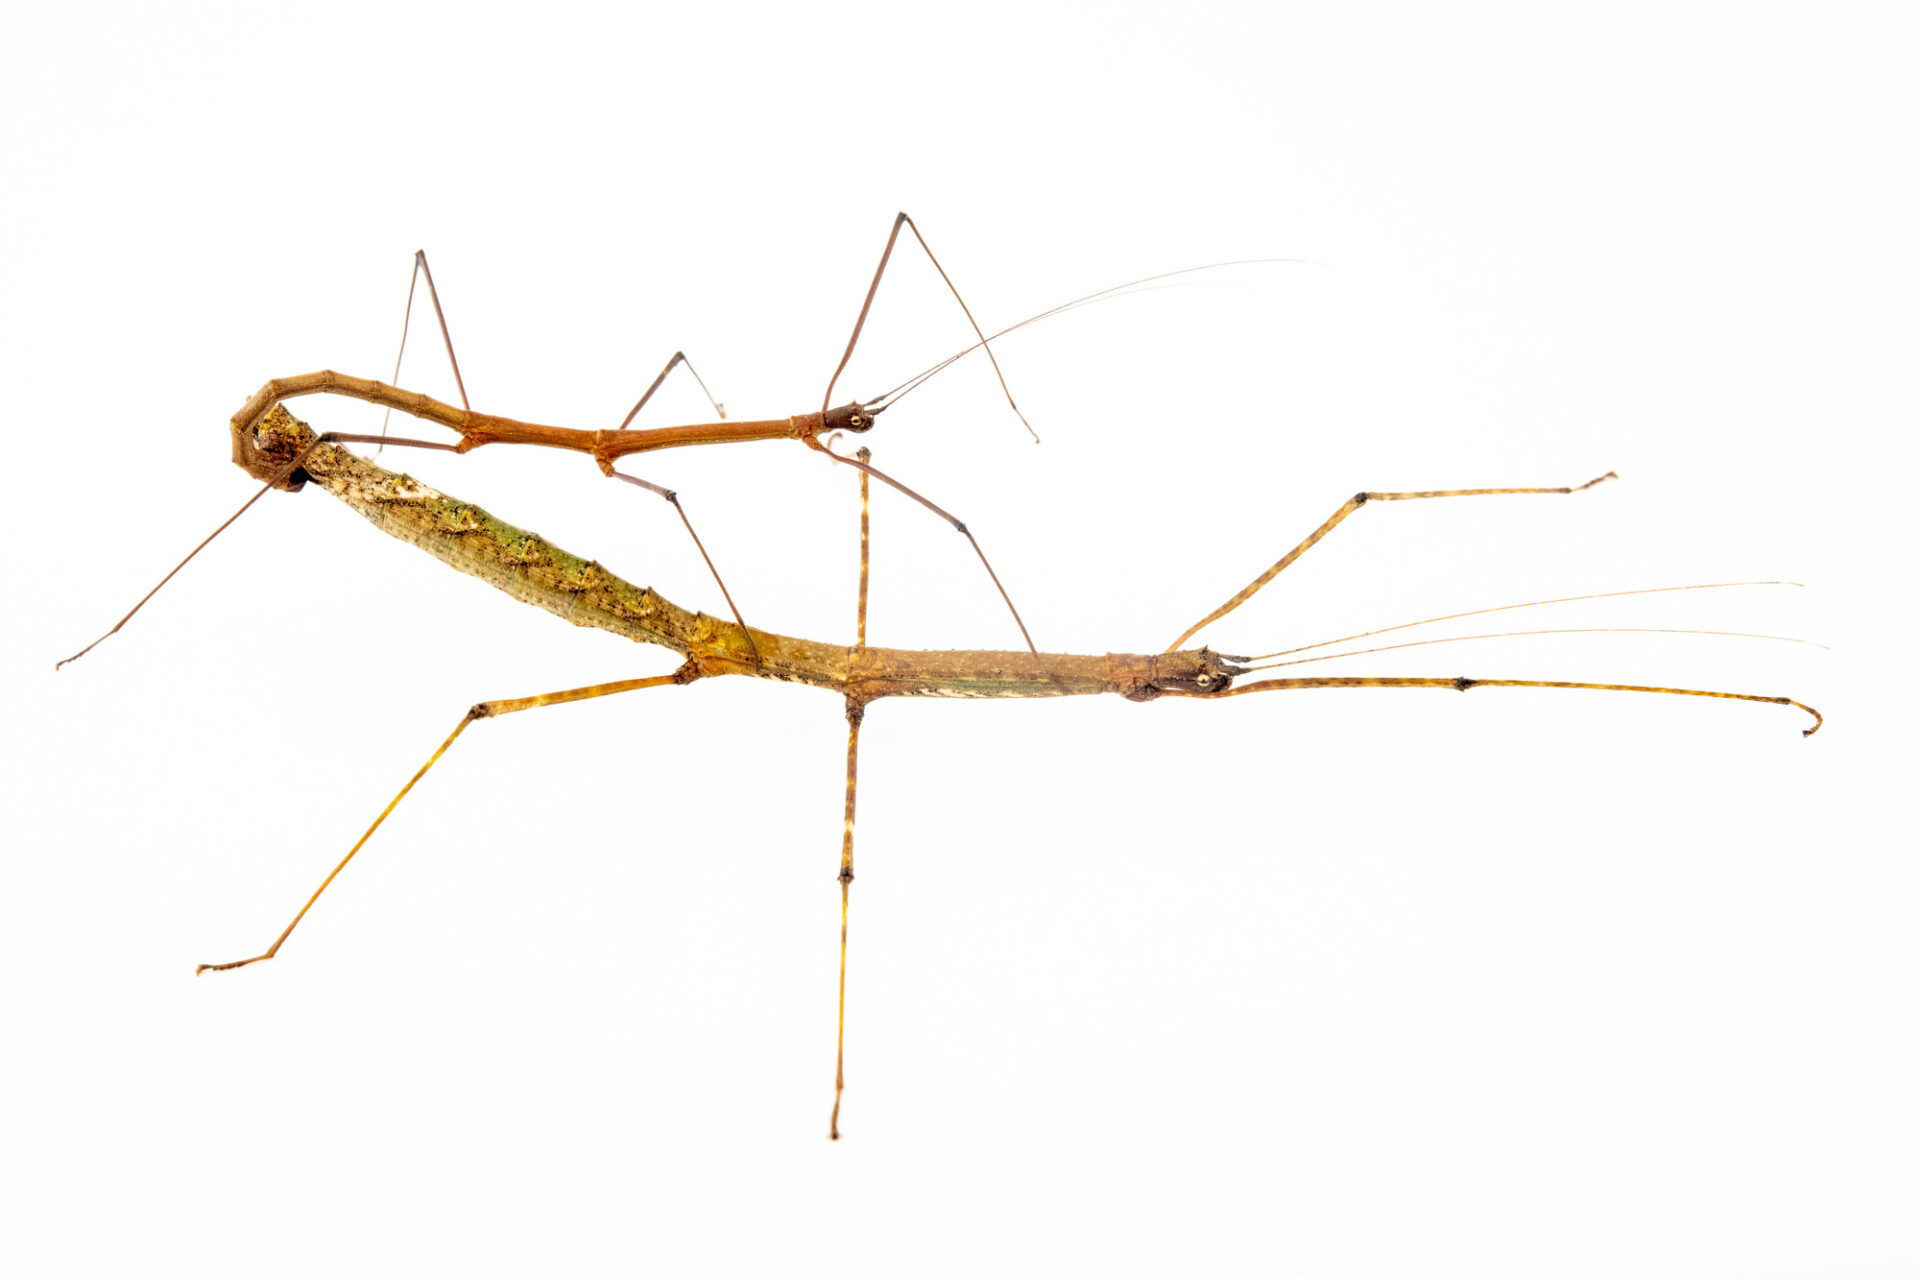 Photo: A pair of Philippine walking stick (Lonchodes philippinicus) at Zoo Plzen in the Czech Republic.